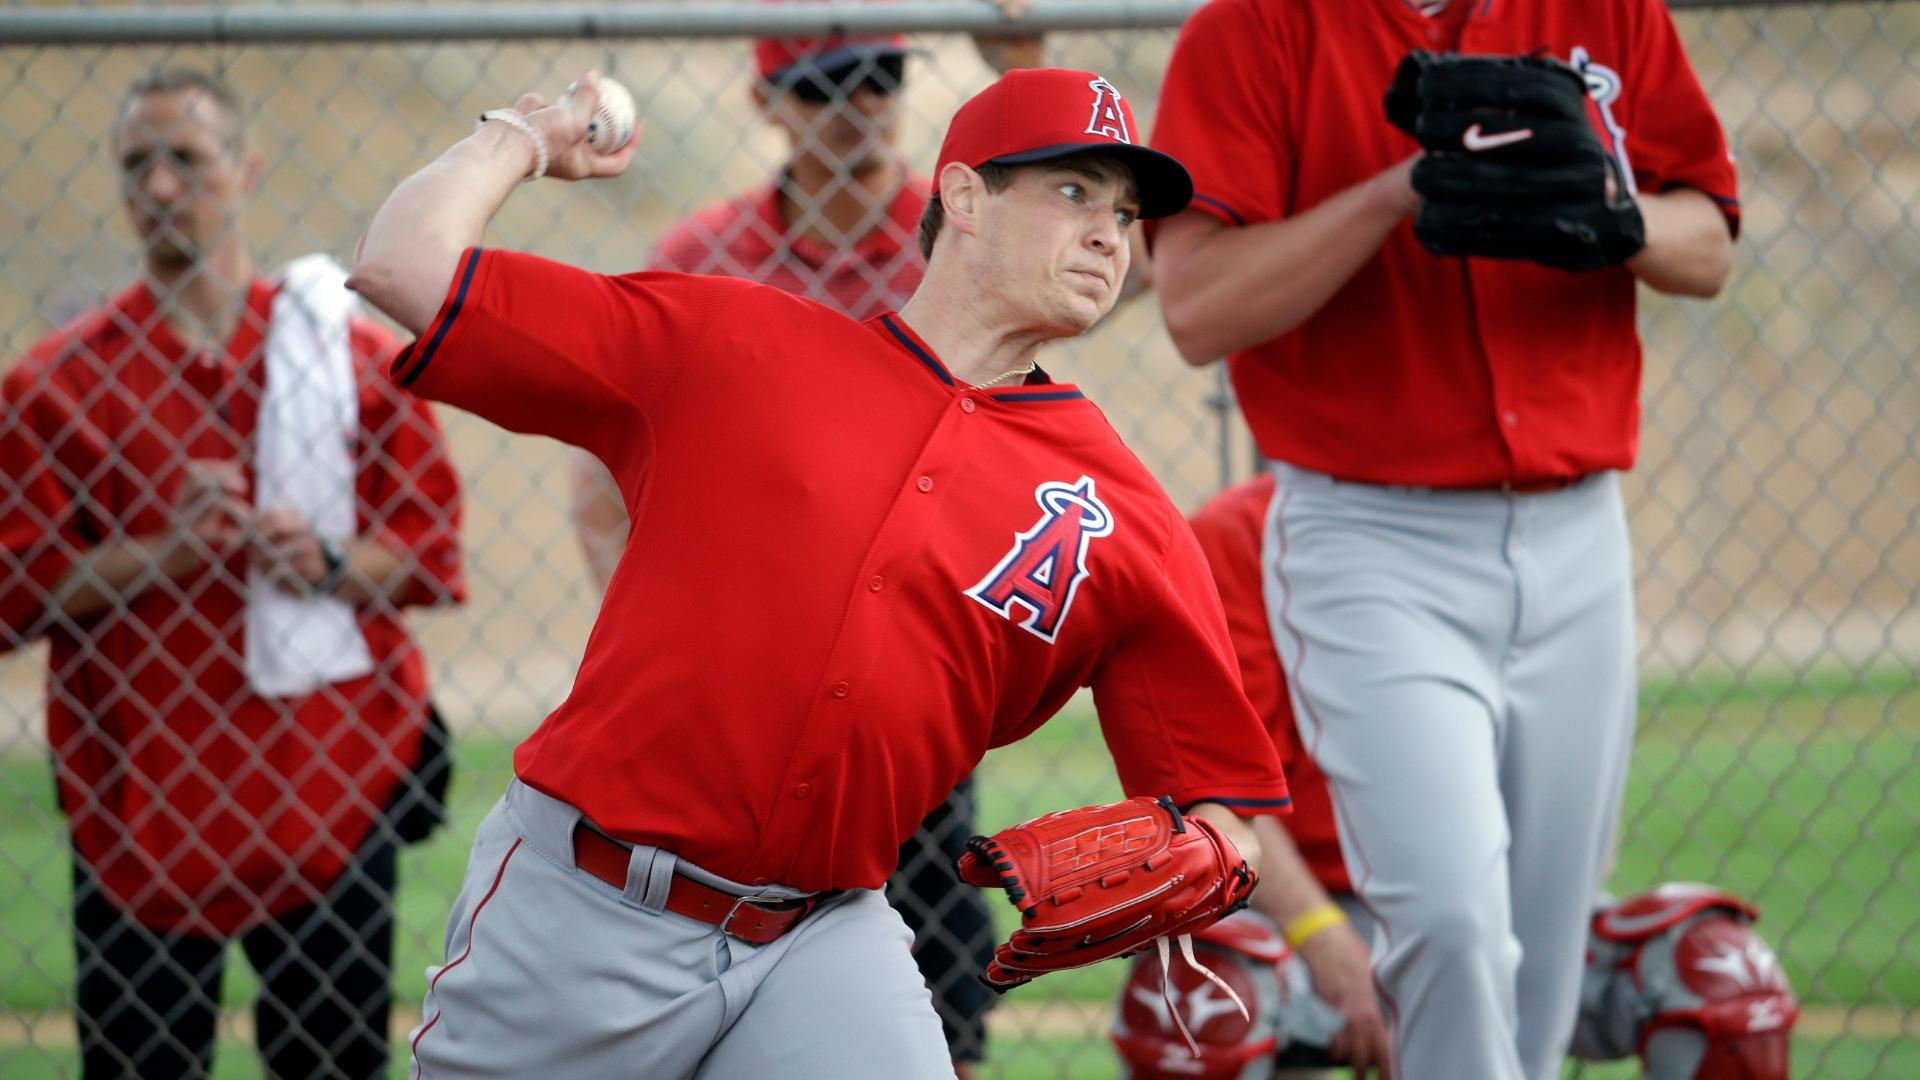 Video - Angels: Players To Watch This Spring